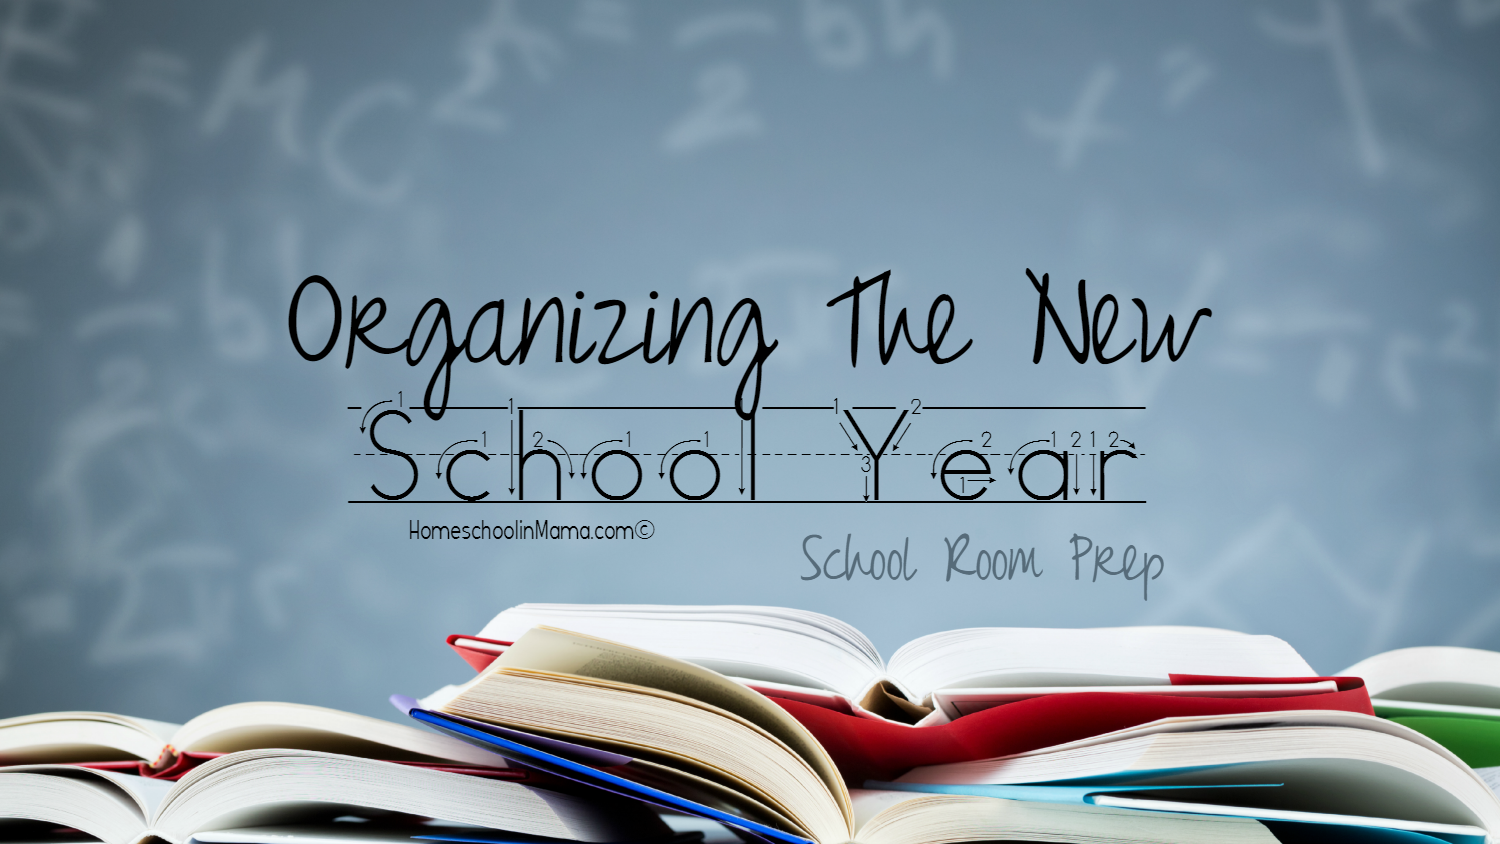 Organizing The New School Year – School Room Prep